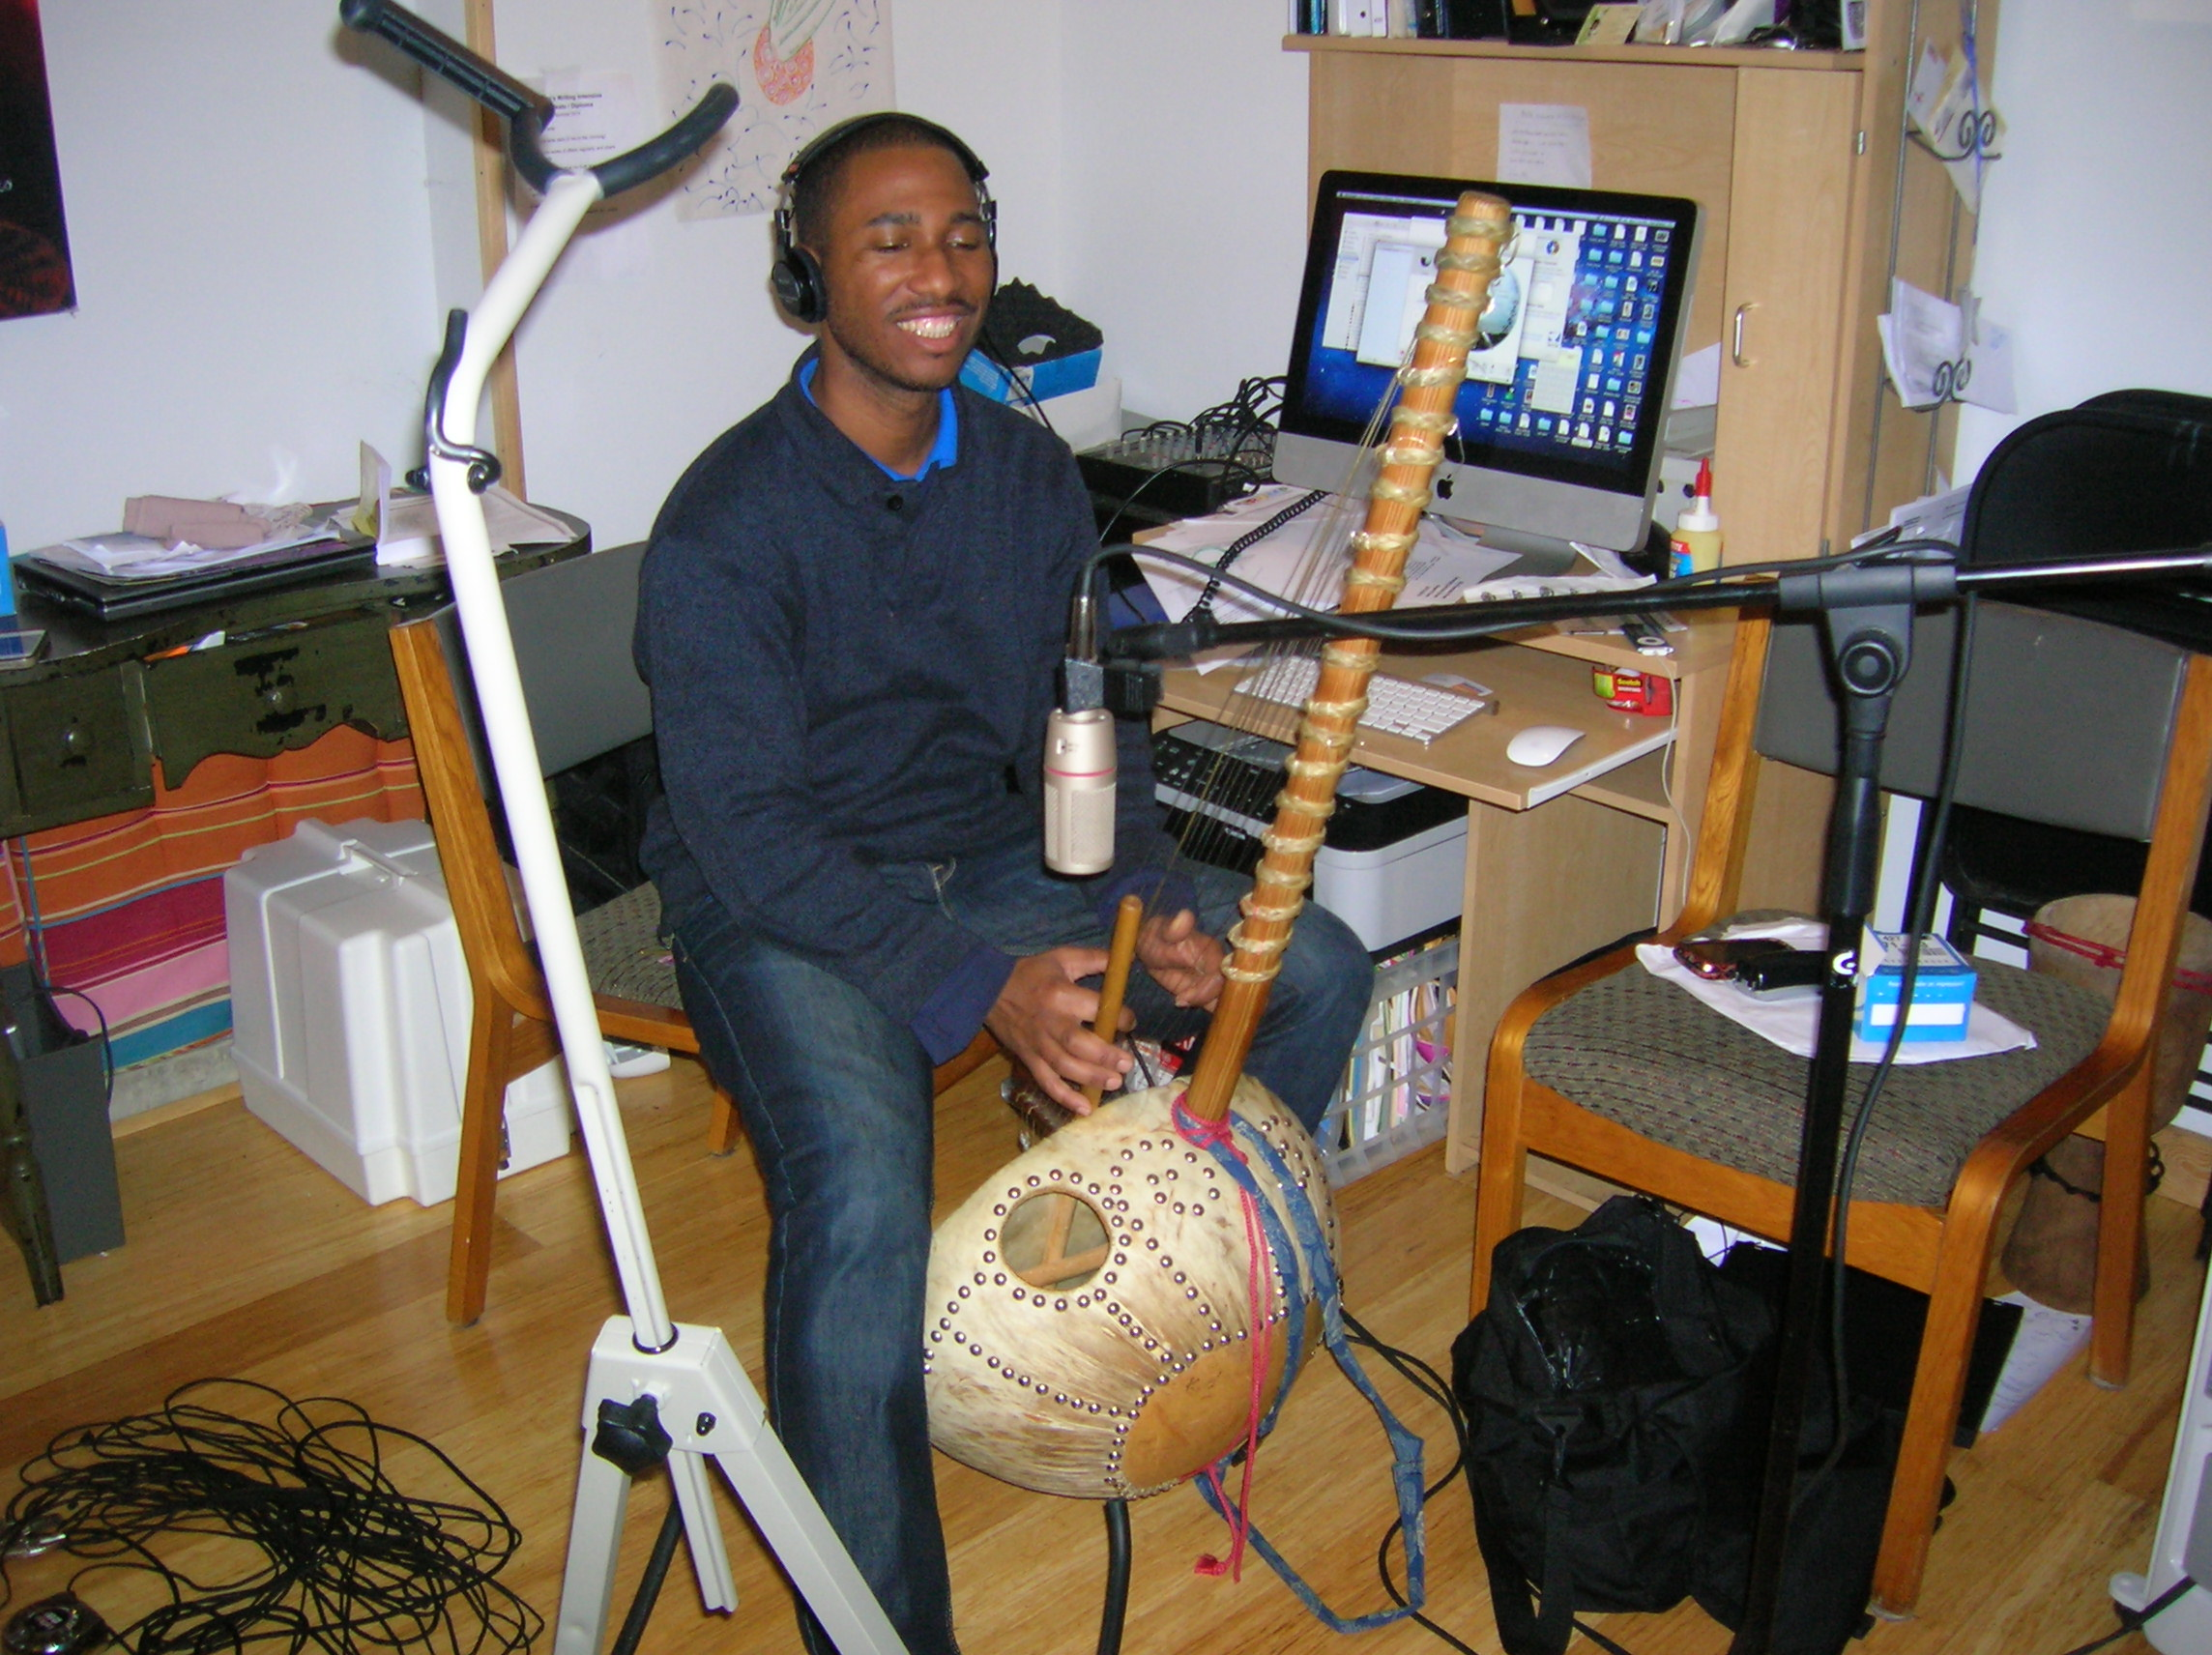 A musician plays a kora in a music studio